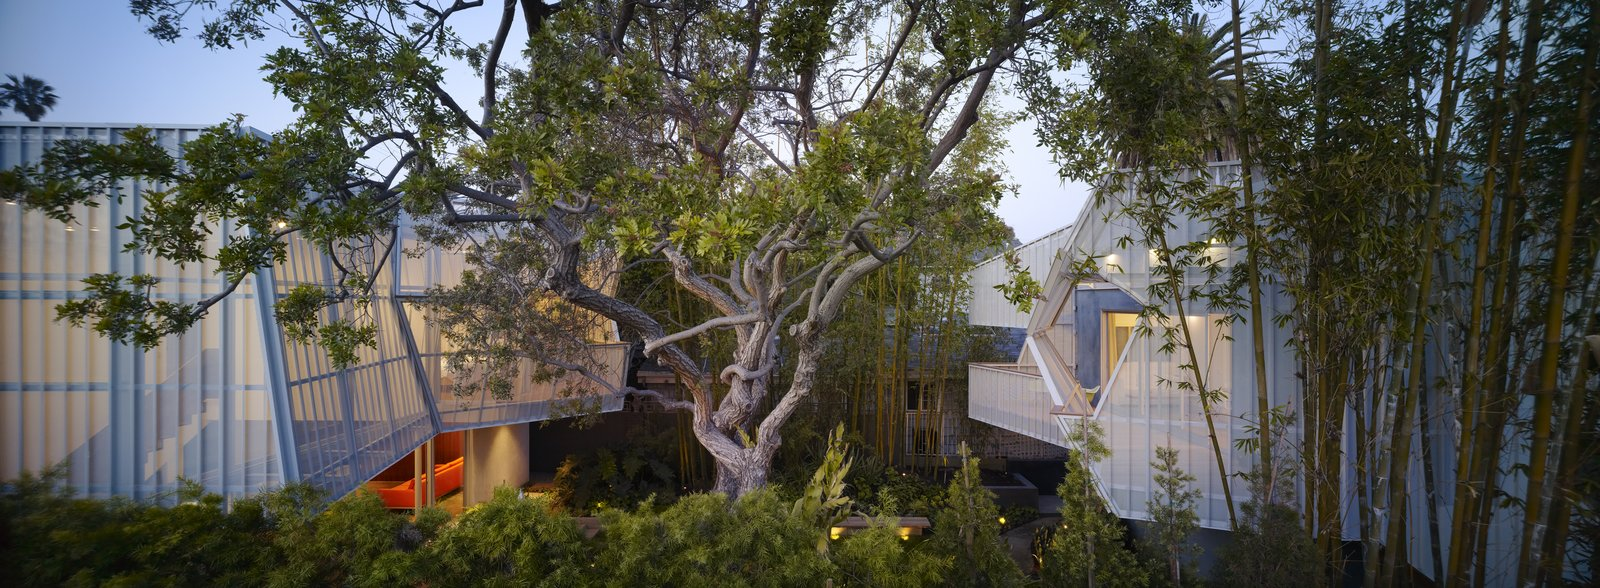 #outside #exterior #outdoor #landscape #view #aluminum #metal #eco #green #sustainable #Venice #California #KevinDalyArchitects  Venice Residence by Kevin Daly Architects